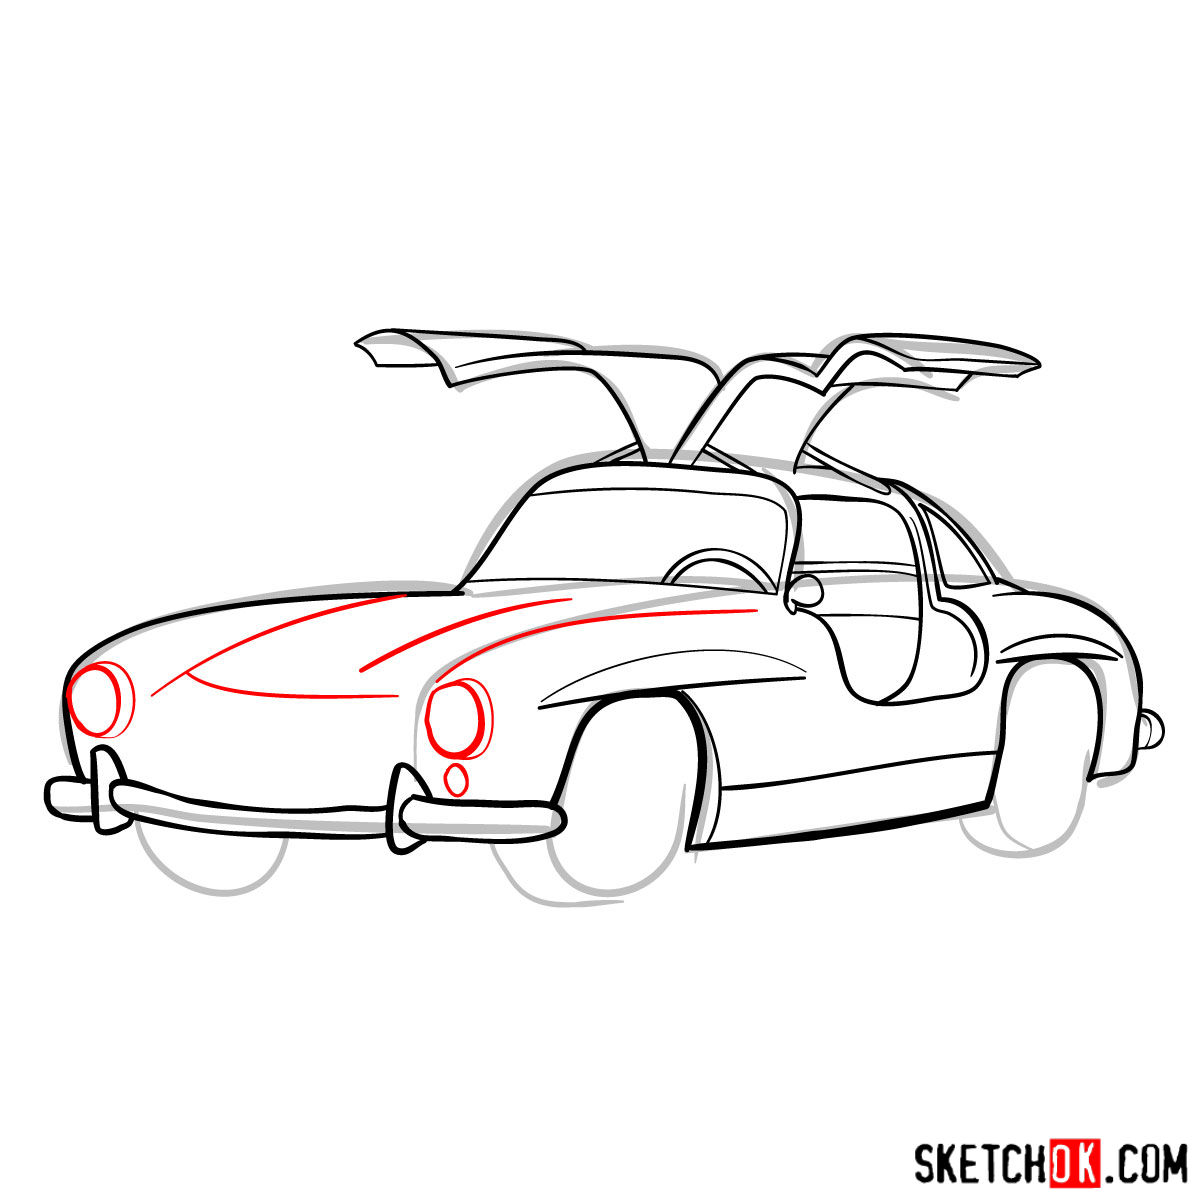 How to draw Mercedes-Benz 300SL Gullwing- - step 10